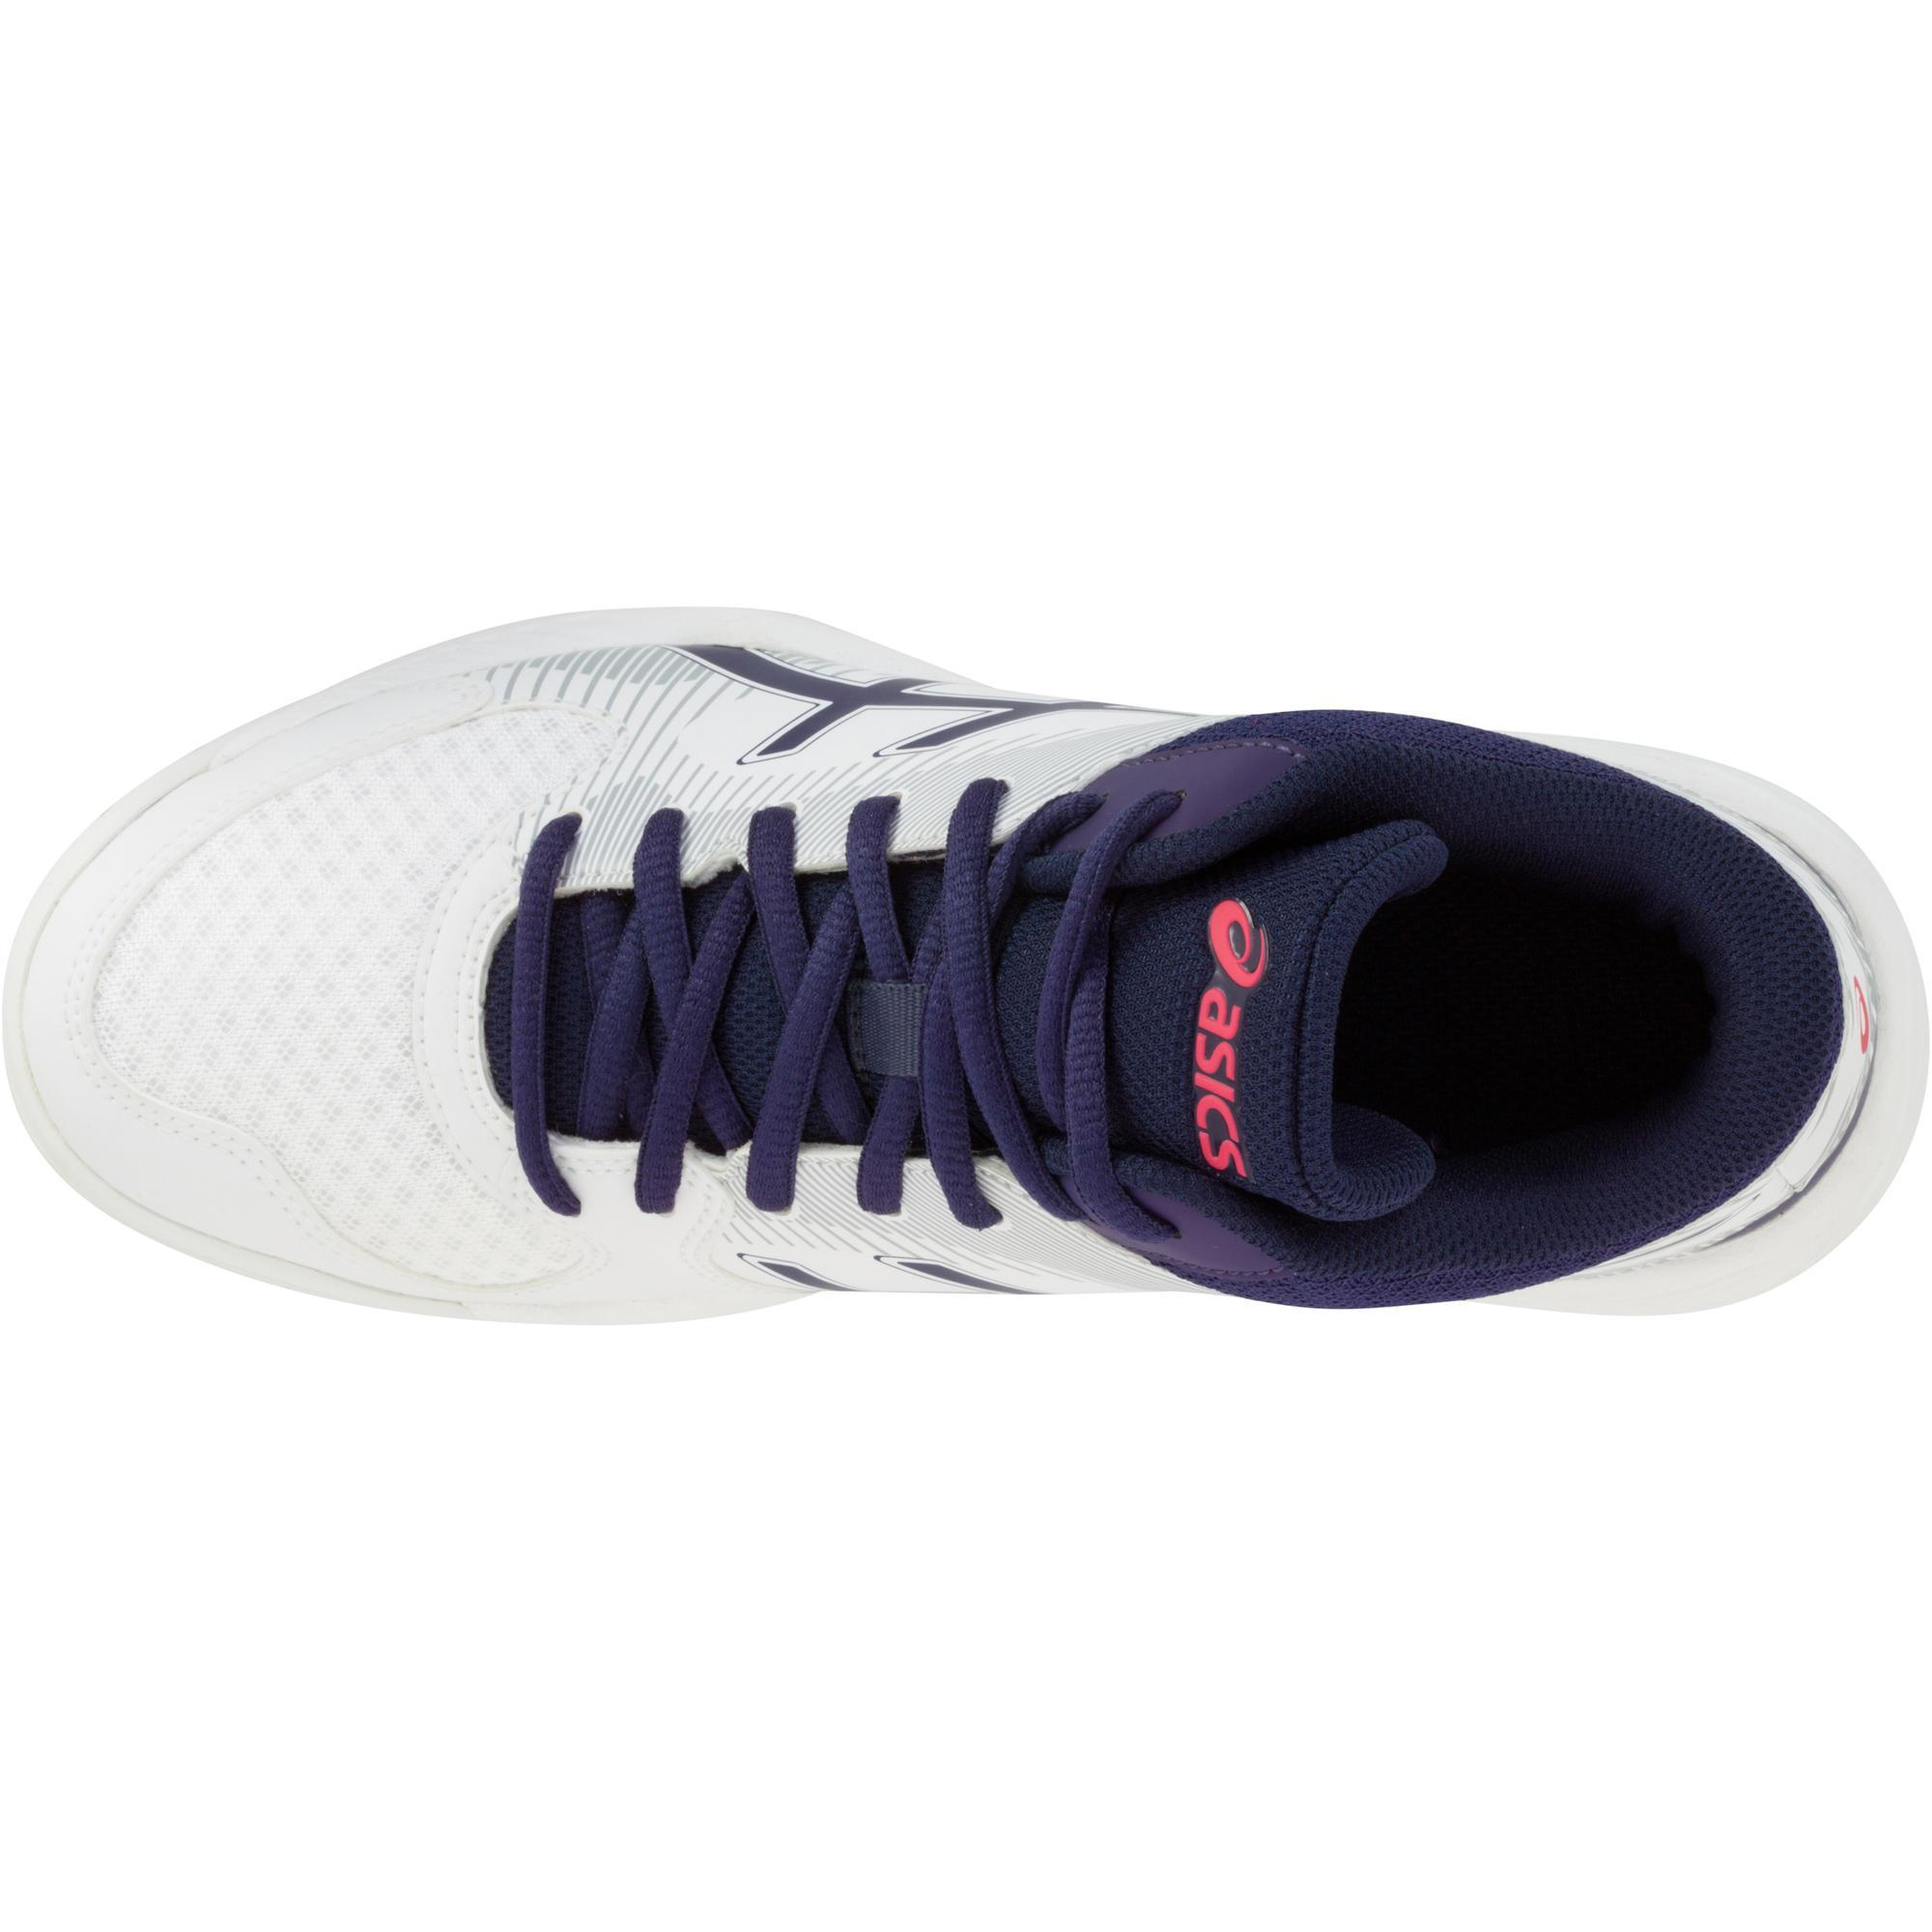 Chaussures Asics Gel Task blanches femme